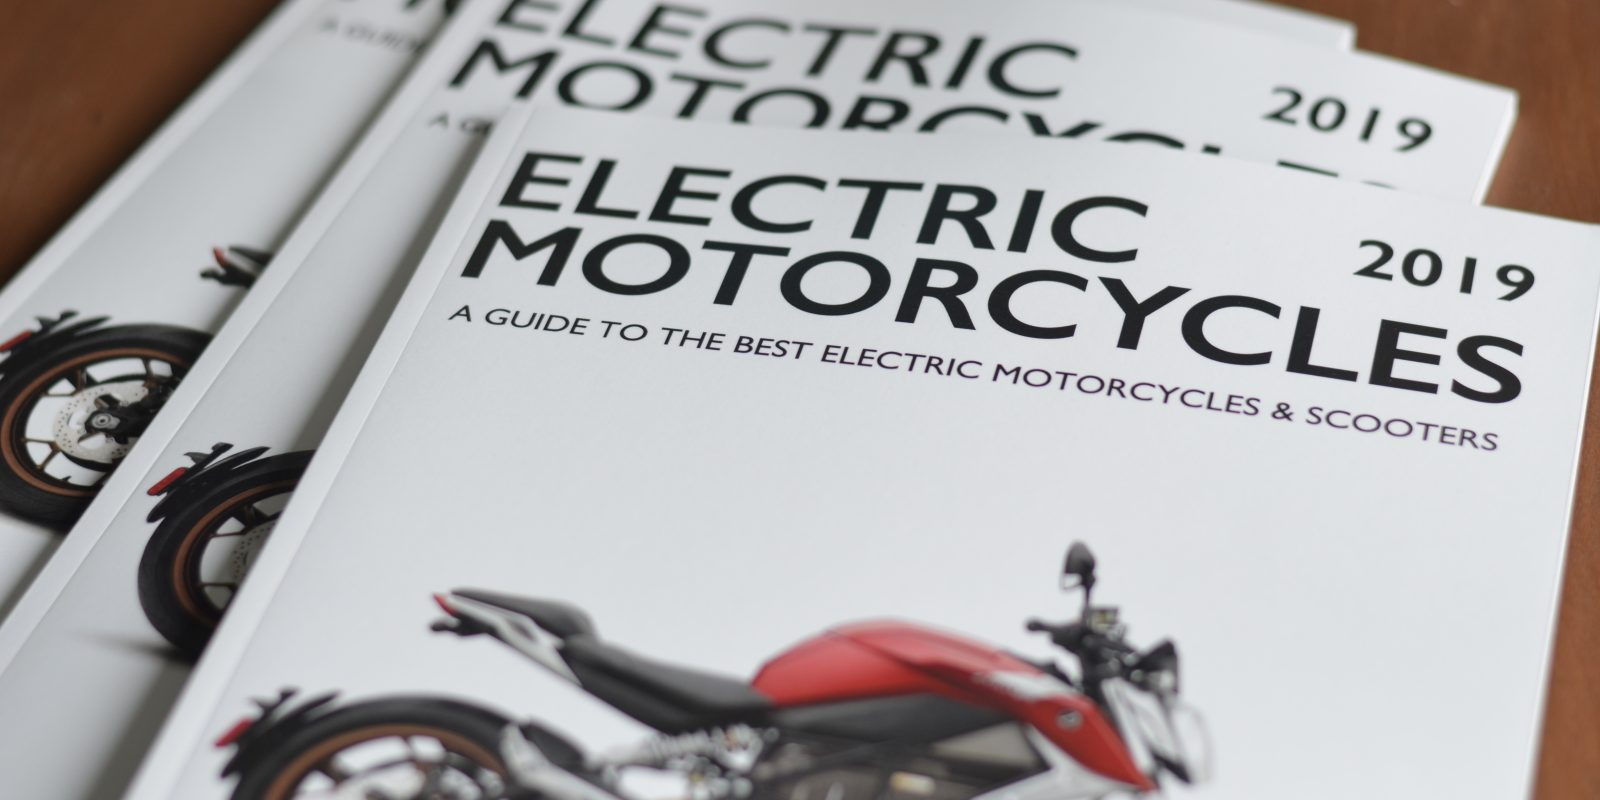 I Wrote A New Book About Electric Motorcycles Here Are The Top 5 E Motos Of 2019